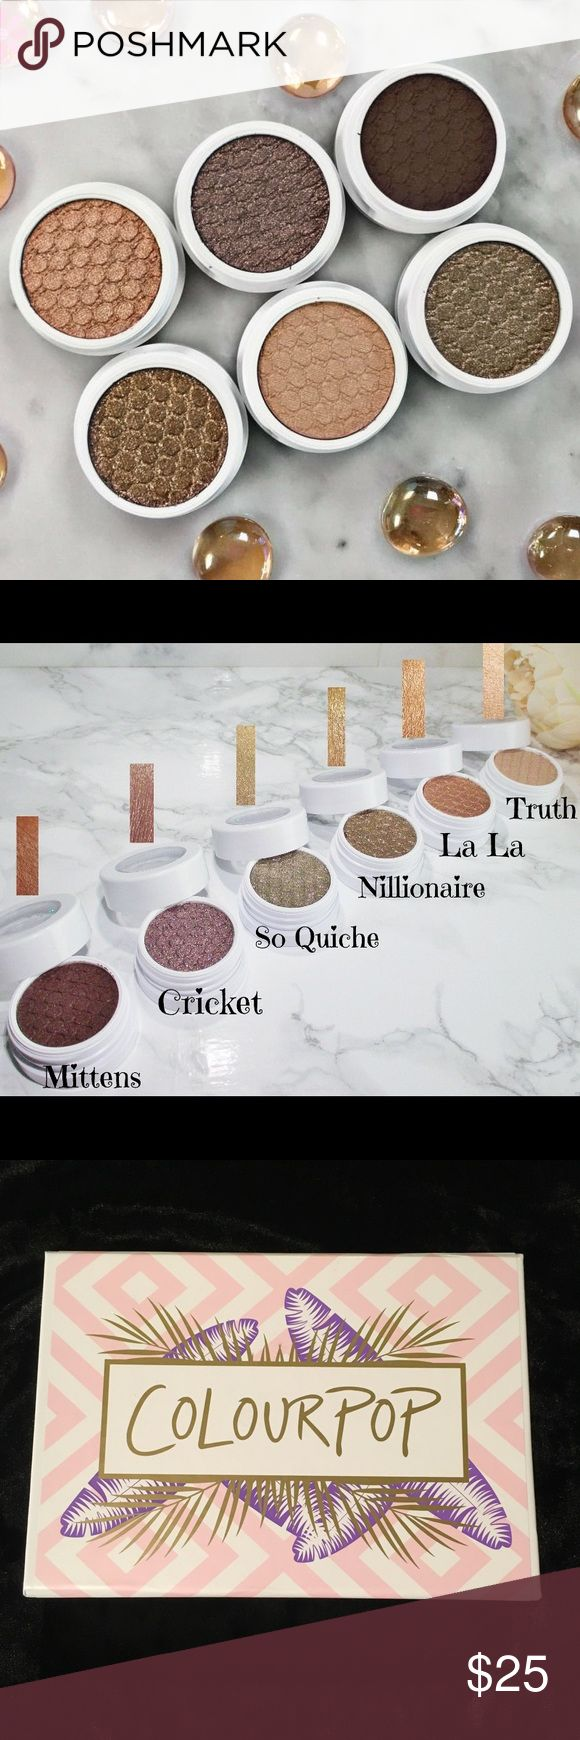 """COLOUR POP Mile High Eyeshadow Collection Colour Pop """"Mile High"""" NIB Best of Super Shock Shadow Collection Truth, Nillionaire, So Quiche, Lala, Cricket, Mittens Made in USA Regular price: $5/shadow, $30 Colourpop Makeup Eyeshadow"""